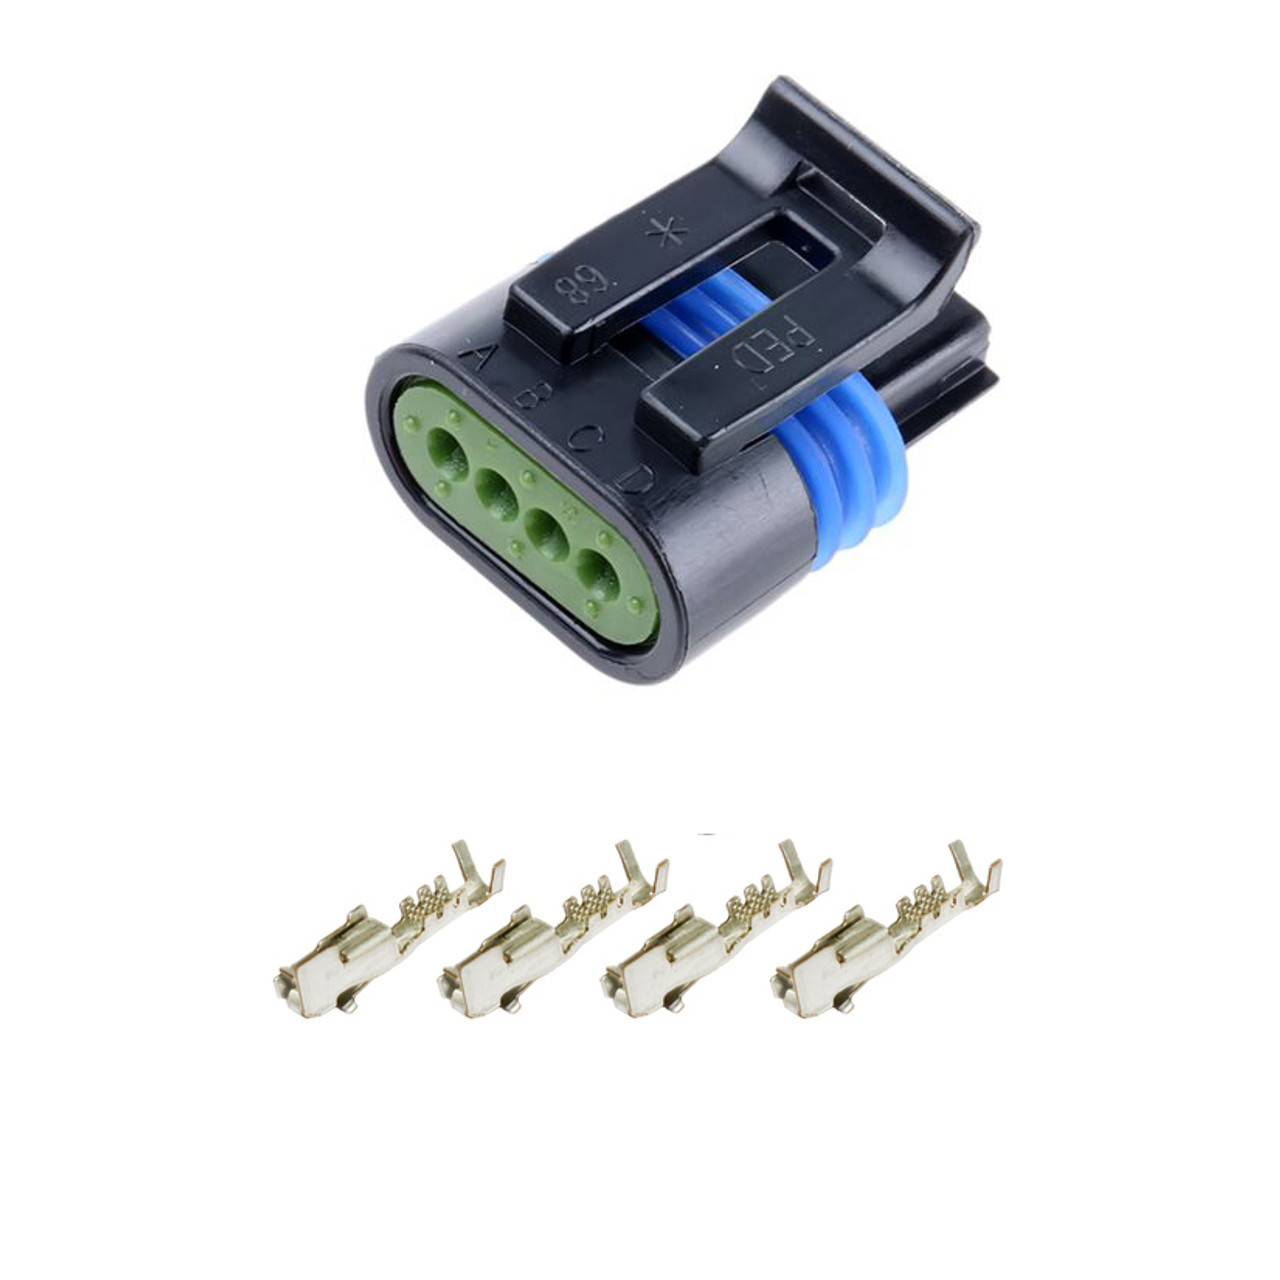 hight resolution of delphi metri pack 150 2 series sealed 4 pin female connector kit obd innovations